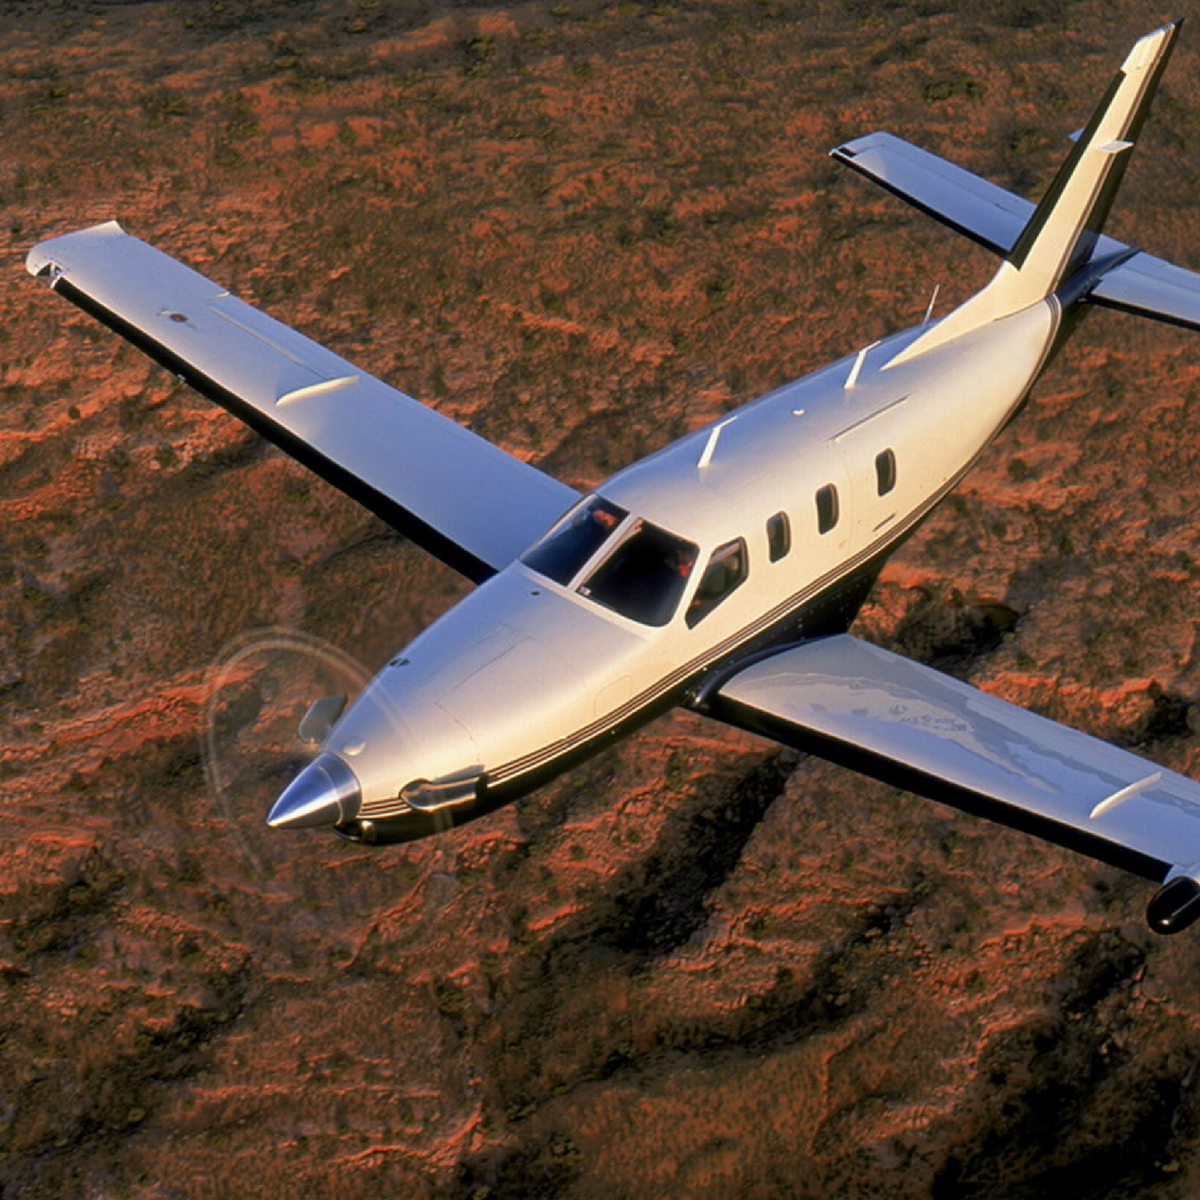 - Turboprop airplanes are a safe cost effective method for regional travel. Whether for business or pleasure. This comfortable aircraft is perfect for short hops and is renowned for its performance in and out of shorter runways.